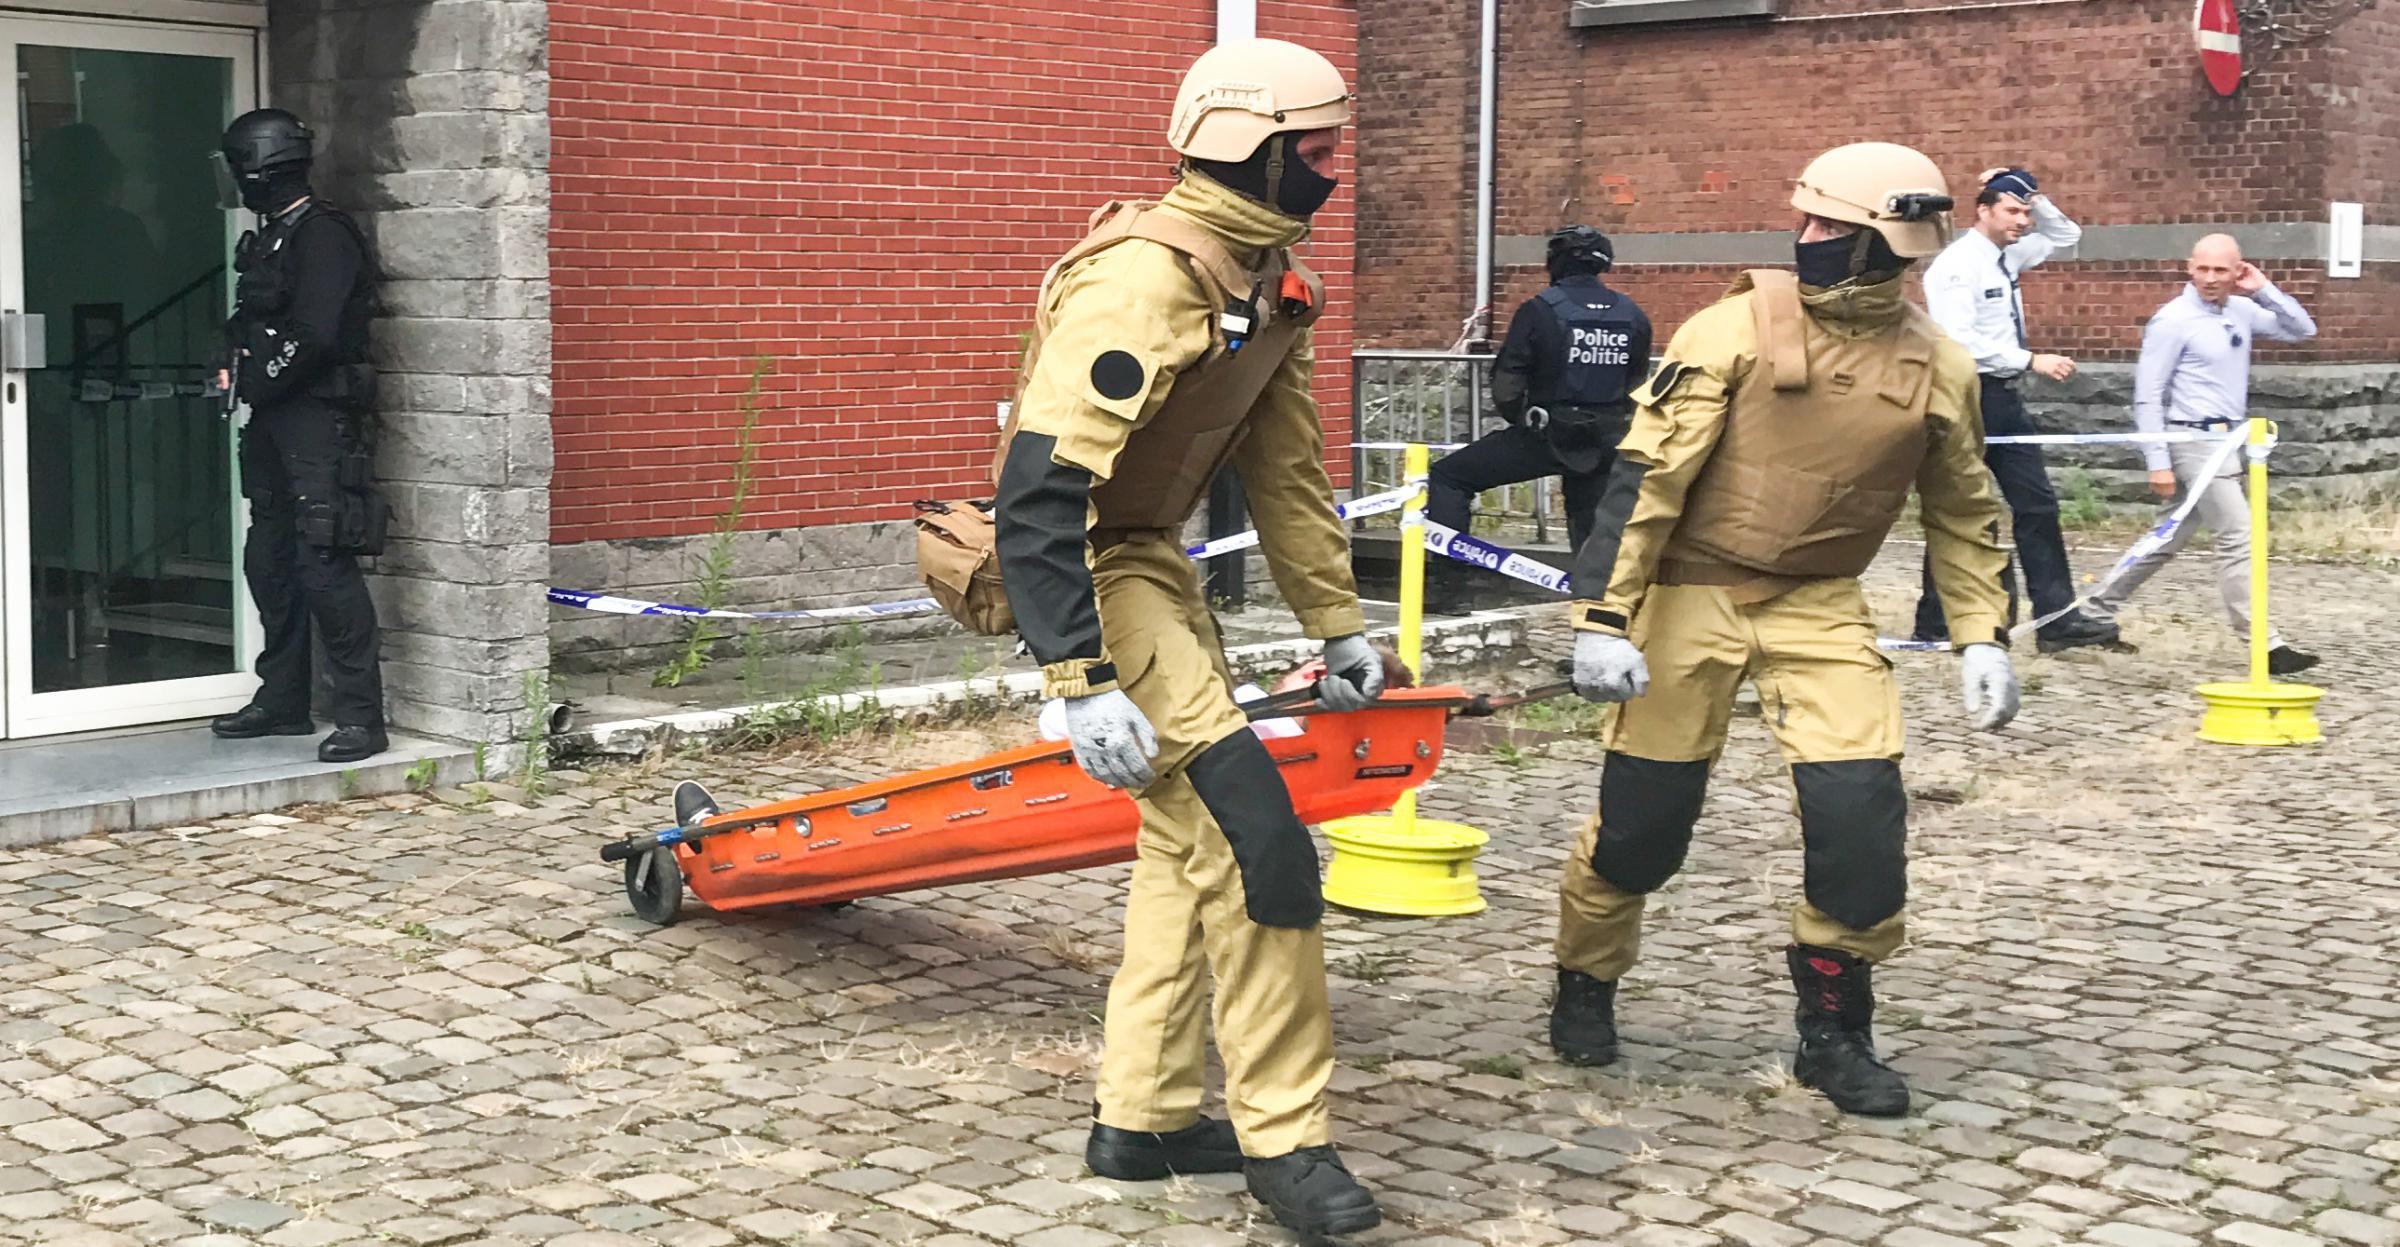 Casualty Extraction Team, CET, nouvelle équipe d'intervention du SIAMU